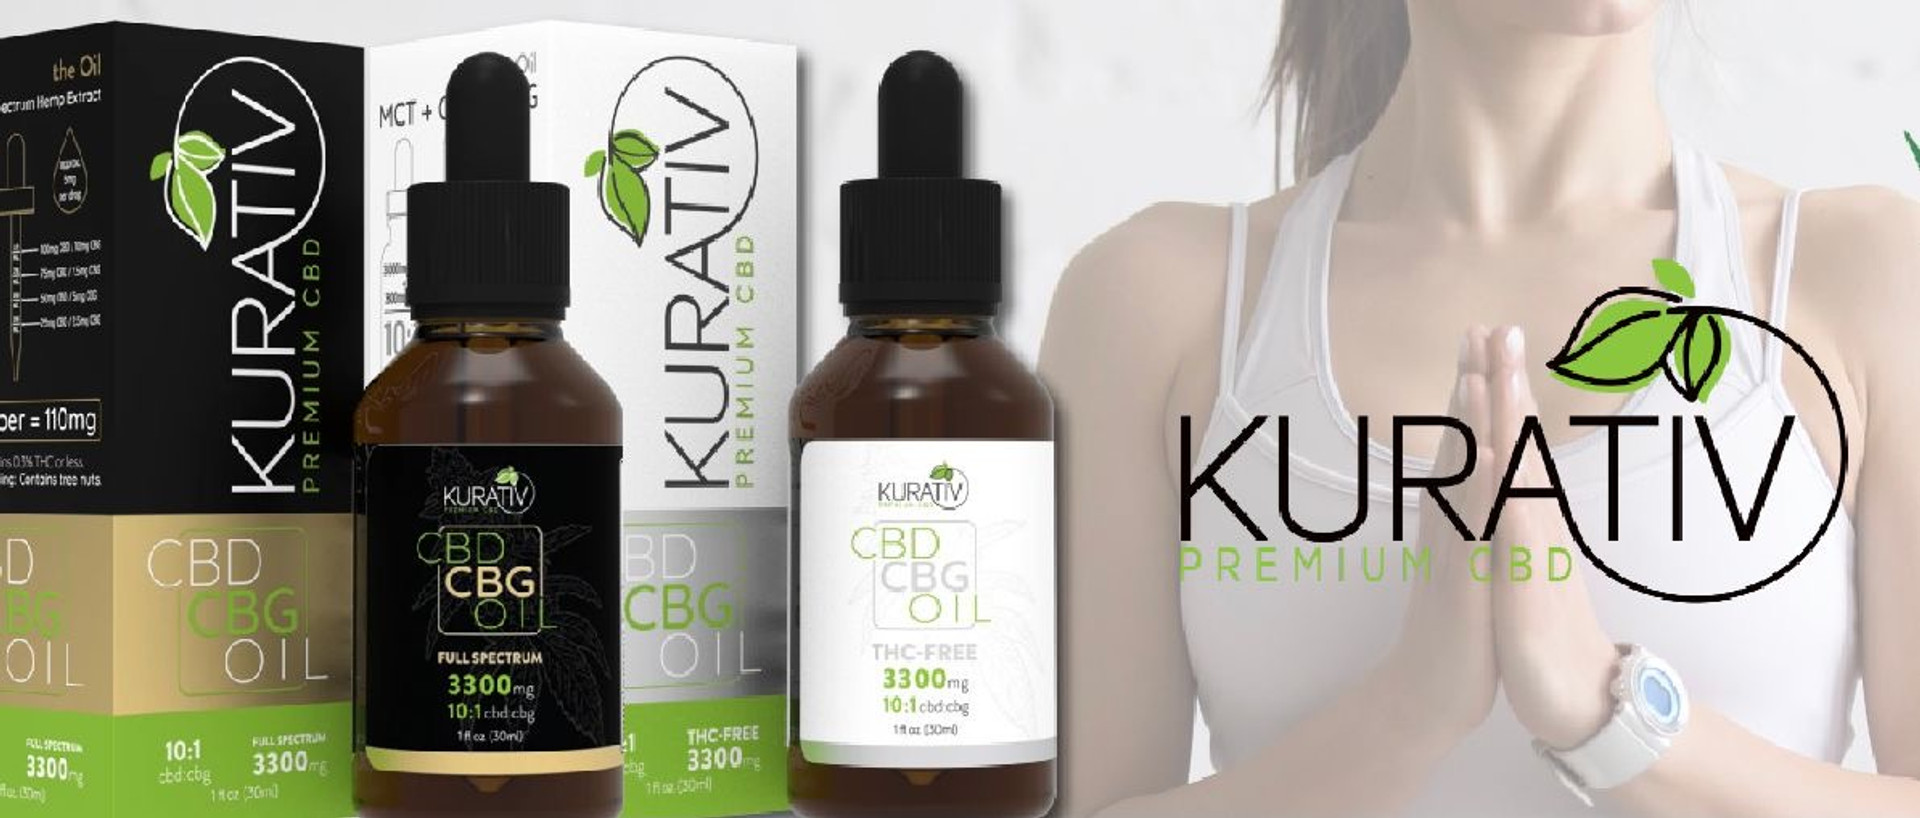 Kurativ CBD was founded with a simple goal in mind – to bring high quality CBD products to market at low price.  Since day one, they have prided themselves on sourcing only premium, U.S. grown hemp for our extracts. Kurativ CBD is On CBDResellers